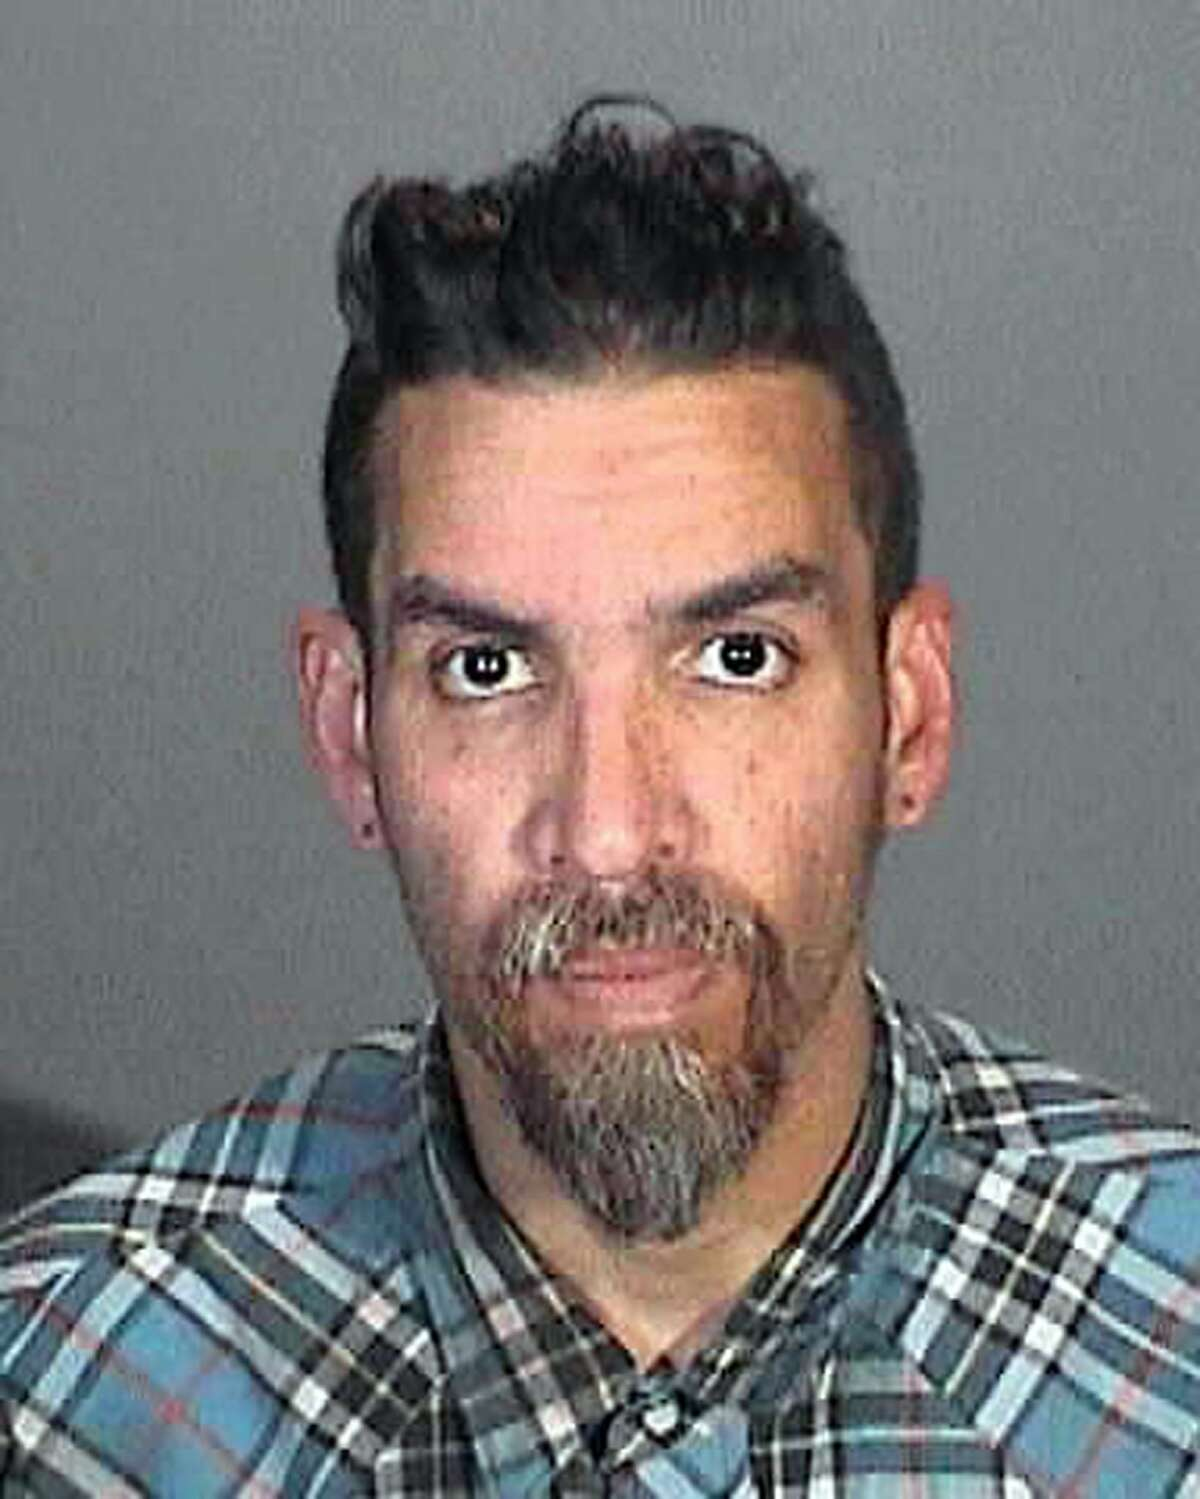 This March 12, 2015 booking photo provided by the Glendale, Calif., Police Department shows Derick Ion Almena. Almena is an operator of the Ghost Ship warehouse in Oakland, in which dozens of people died in a fire that started Dec. 2, 2016. Spokeswoman Tawnee Lightfoot says Almena was stopped for driving with expired registration and, after a consensual search, two license plates from Oakland-area stolen cars were found. The charges apparently were not pursued. (Glendale Police Department via AP)